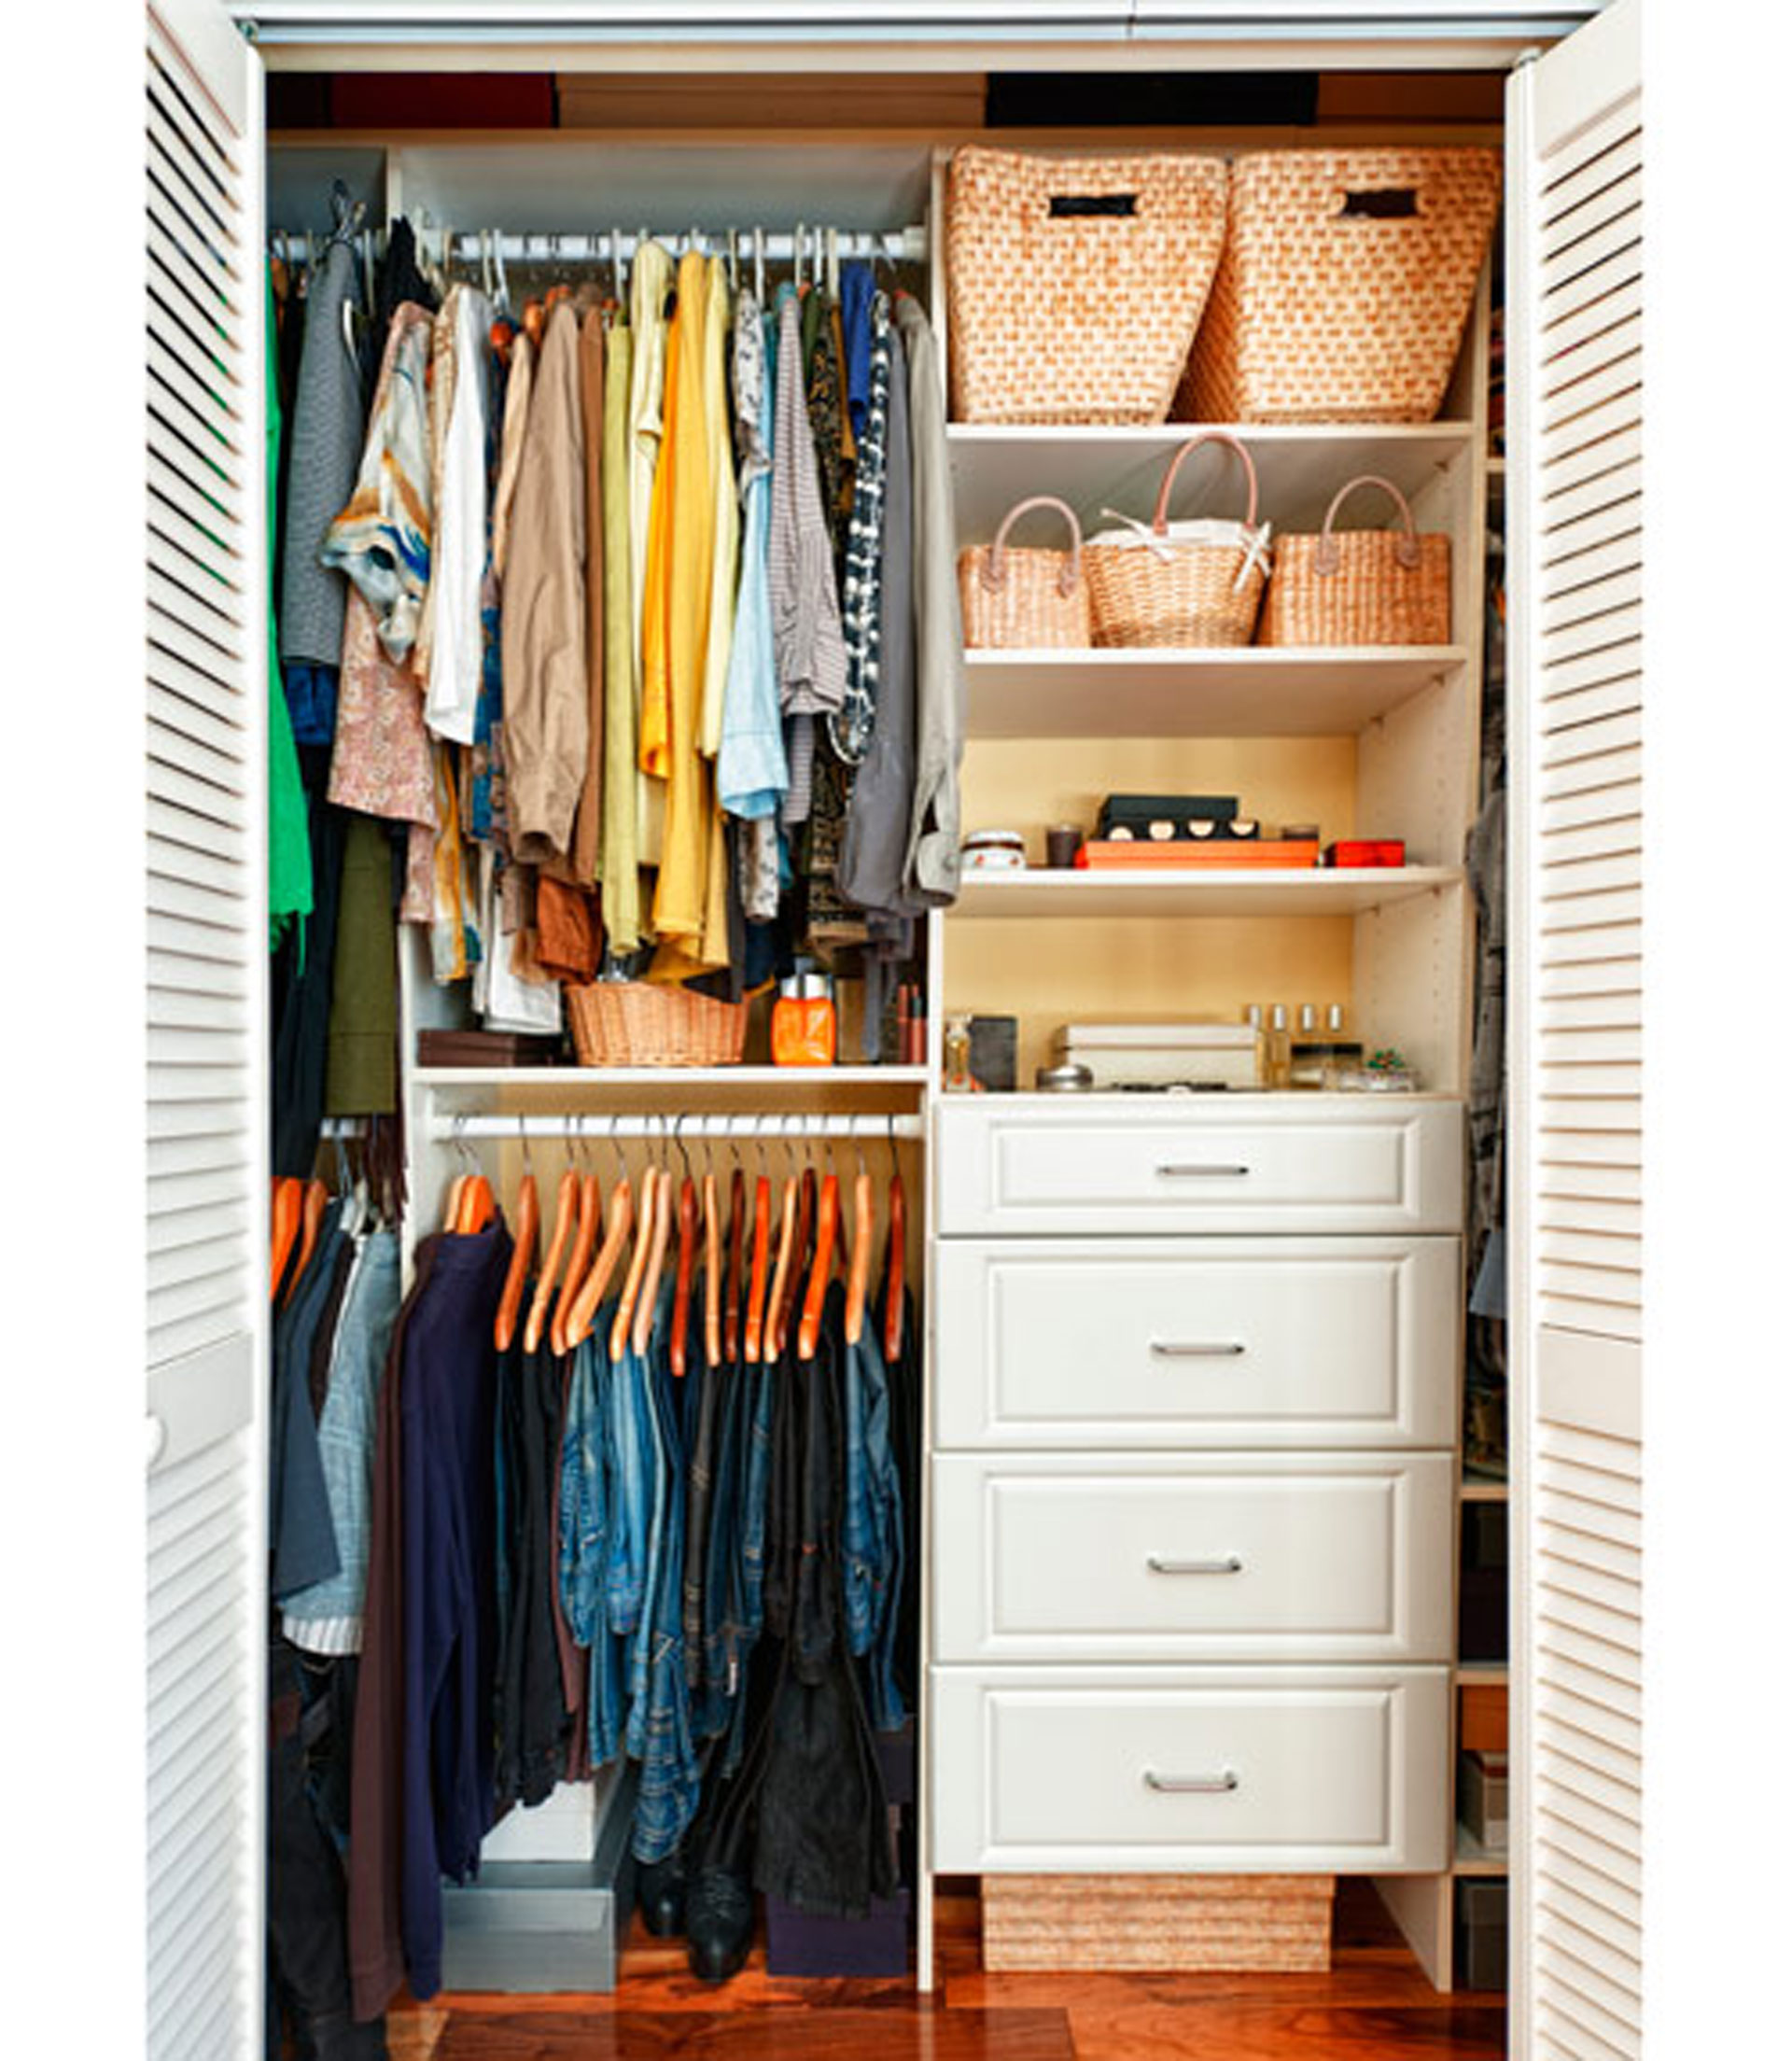 Storage Options For Small Spaces Part - 34: Good Housekeeping